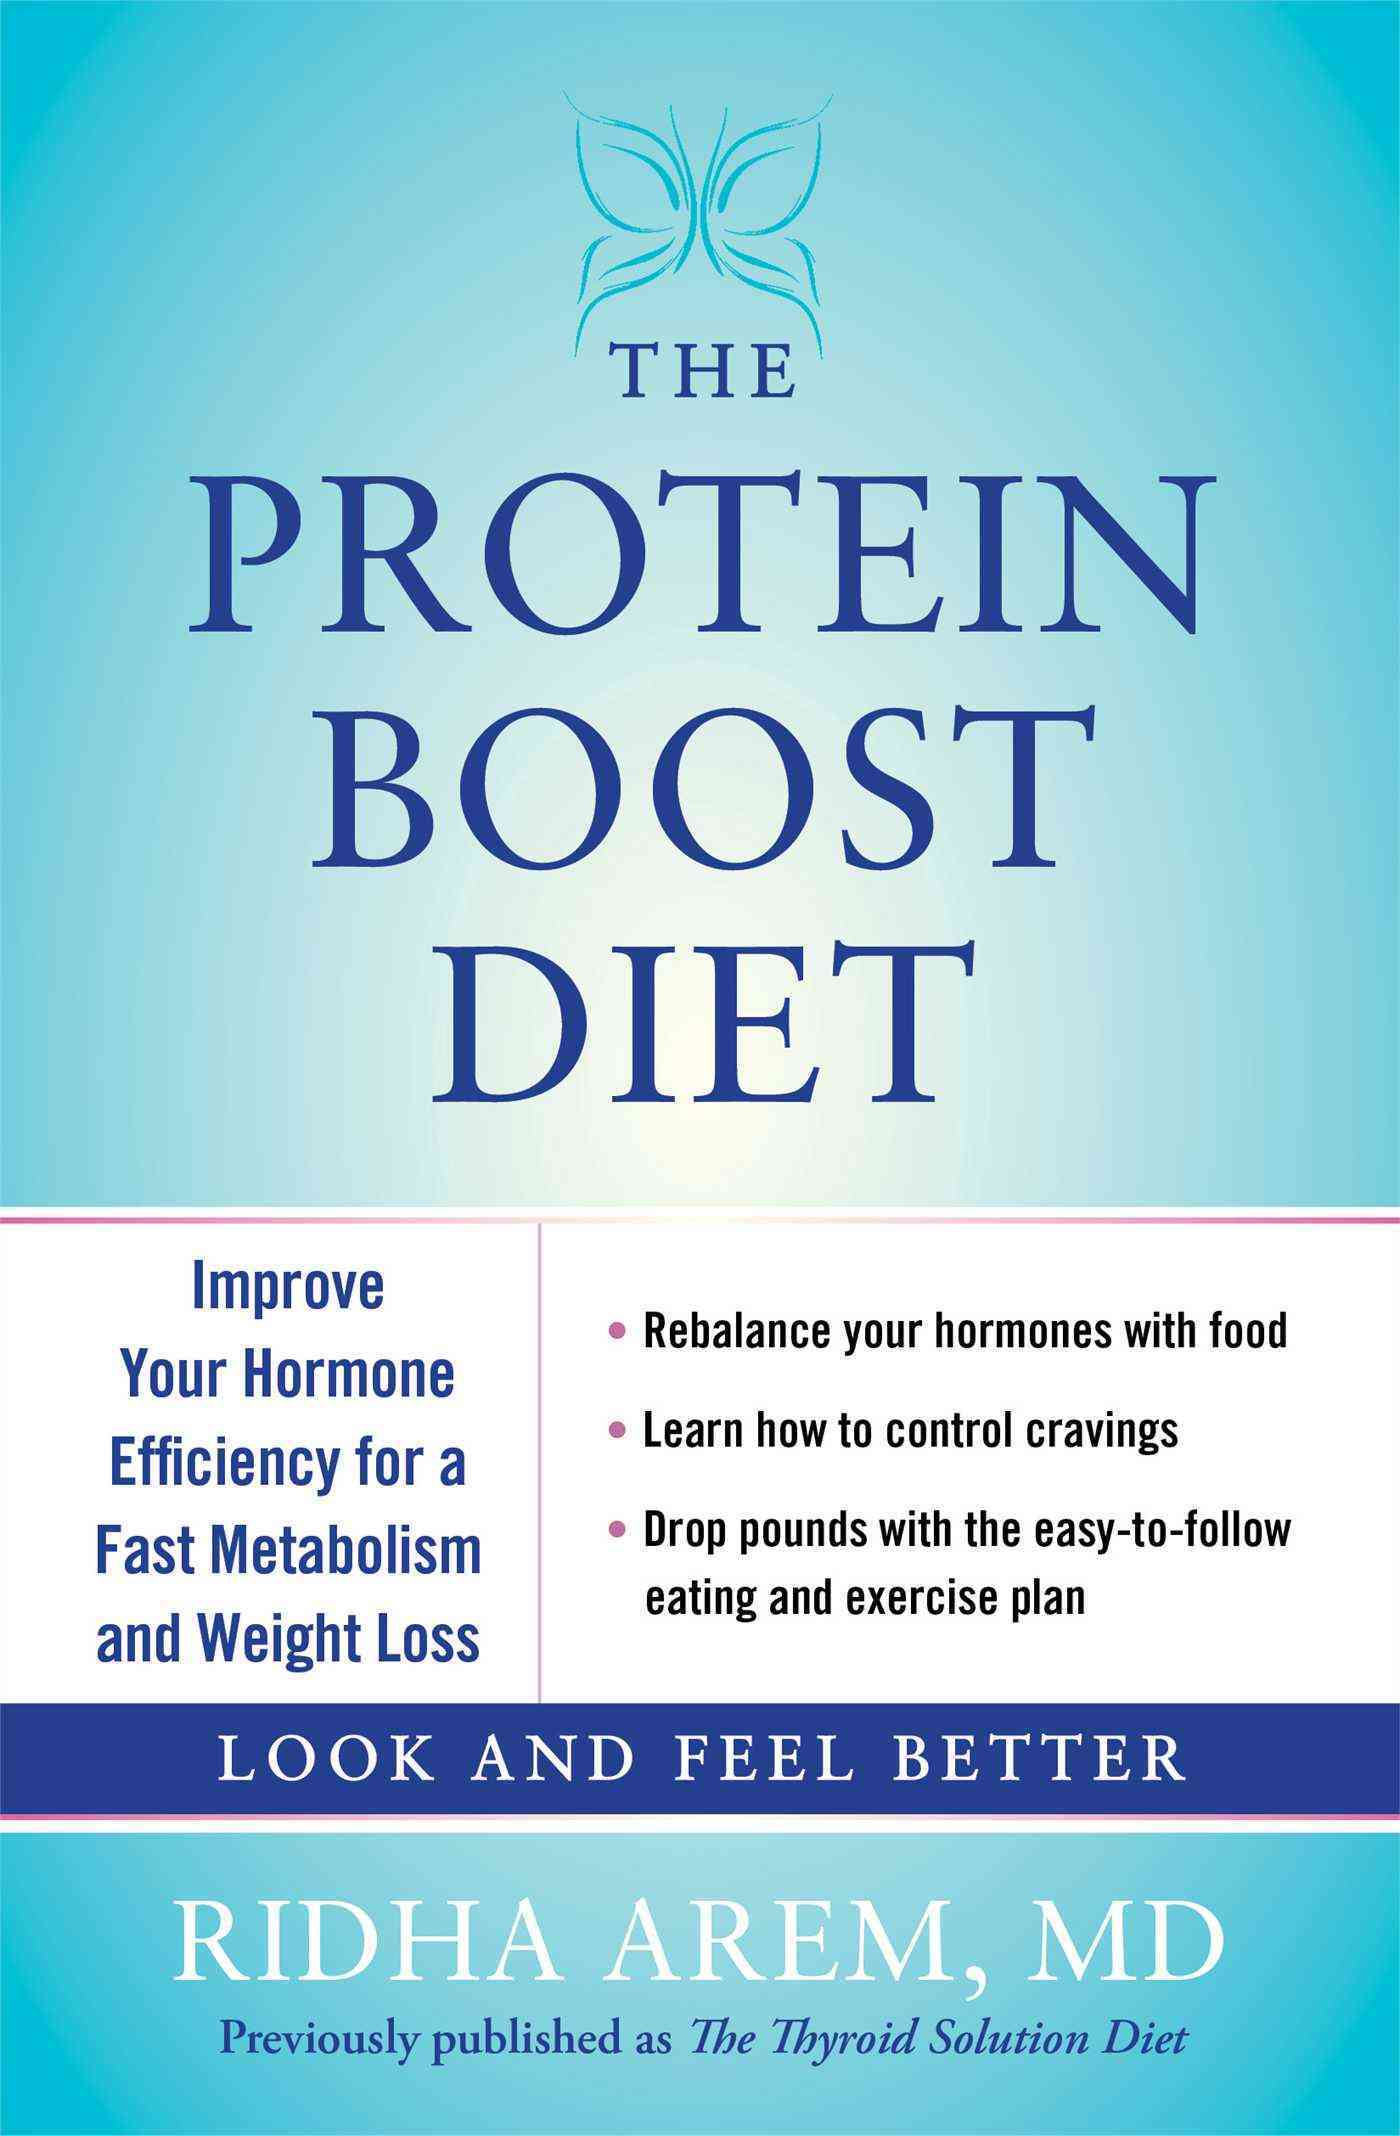 The Protein Boost Diet: Improve Your Hormone Efficiency for a Fast Metabolism and Weight Loss (Paperback)